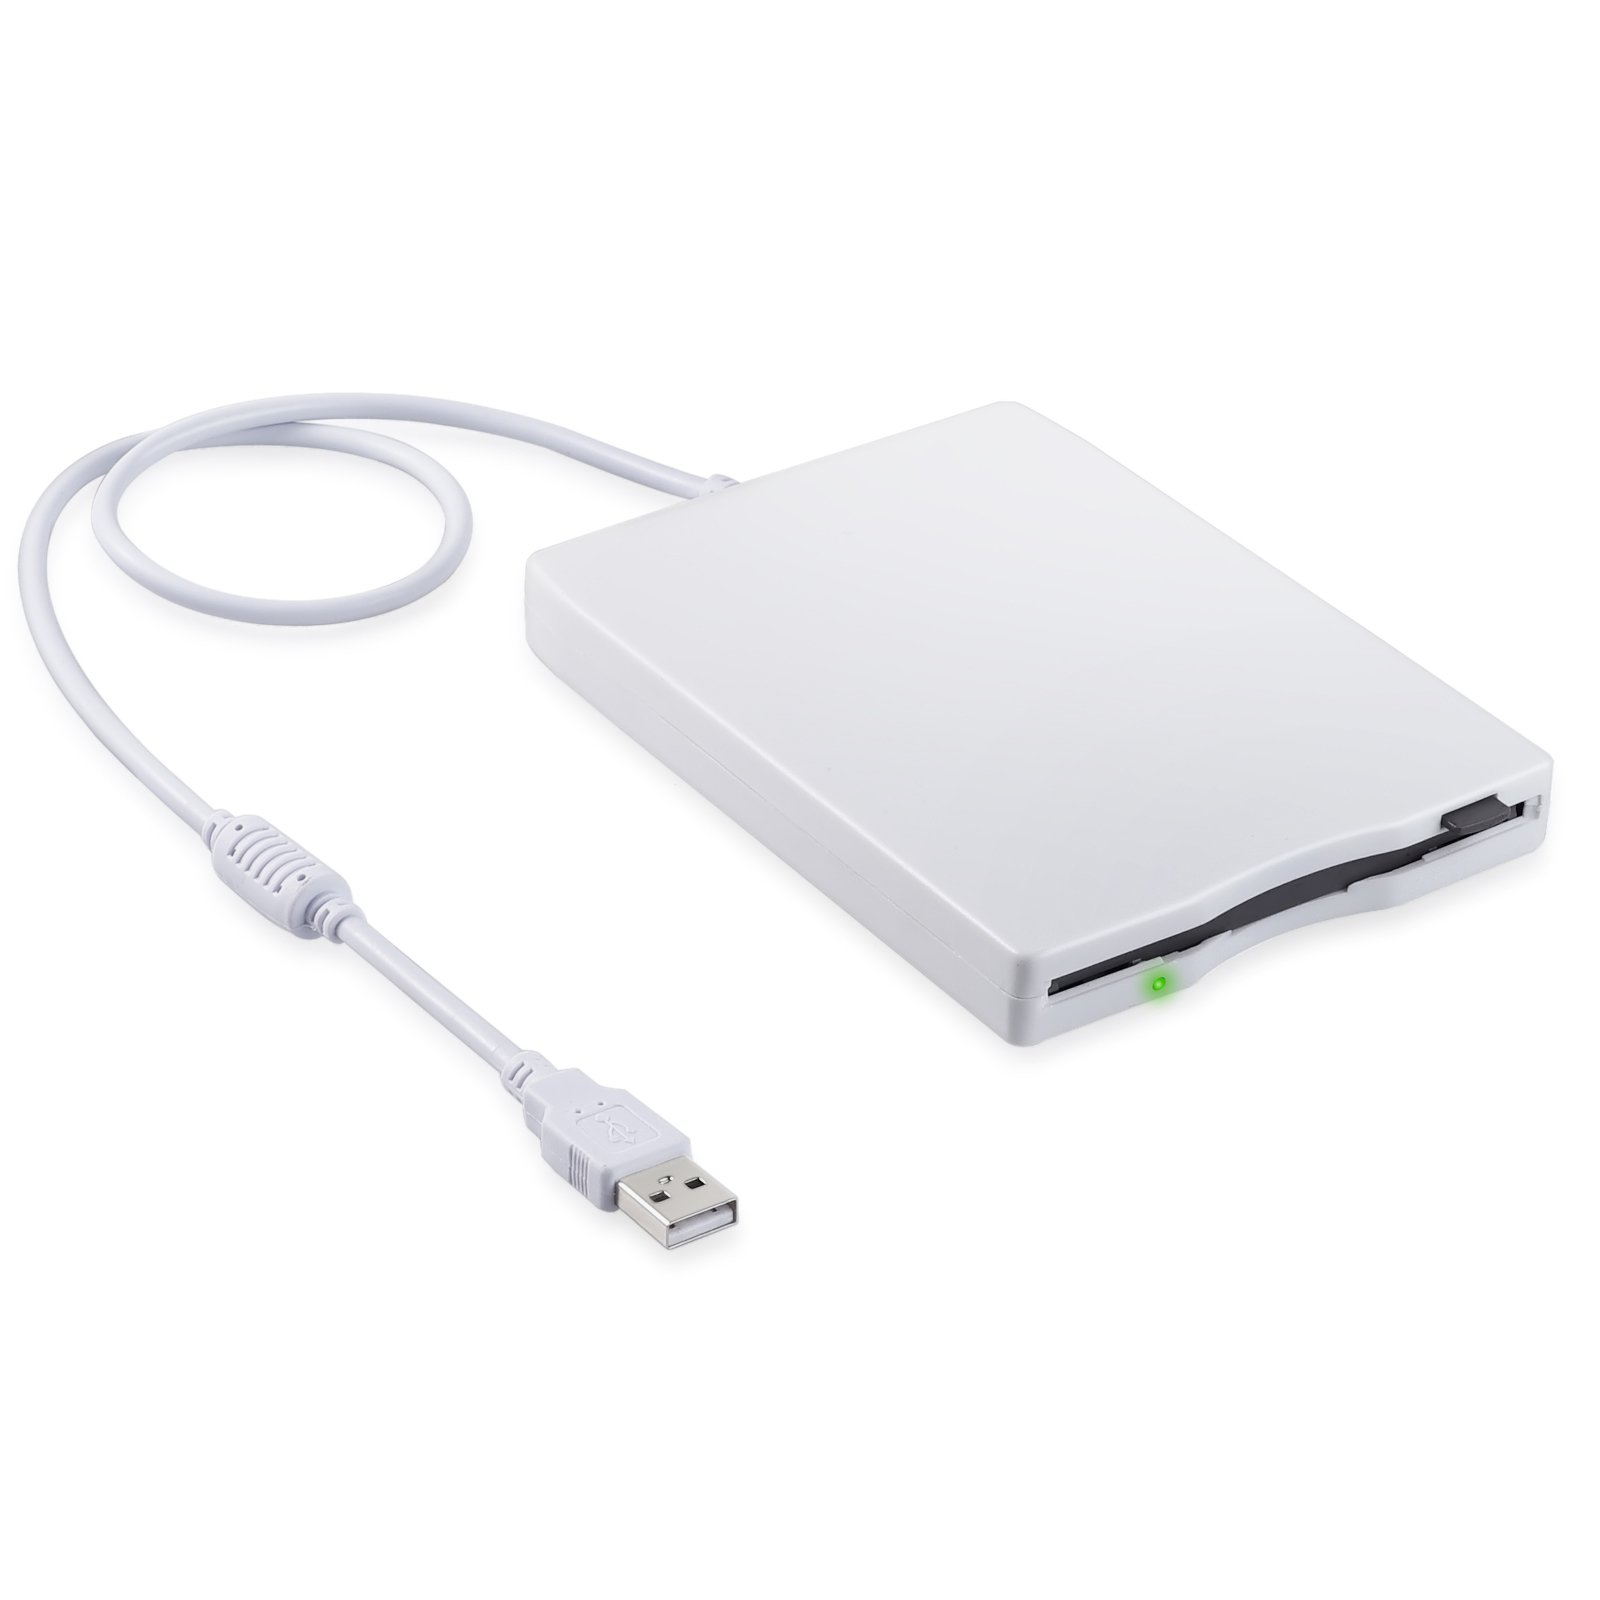 eSynic 3.5'' USB Floppy Drive 1.44 MB FDD Portable External Floppy Disk Drive USB Floppy Drive Reader Plug and Play for PC Windows 10 8 7 Windows 98 2000 Windows XP Vista Mac - White